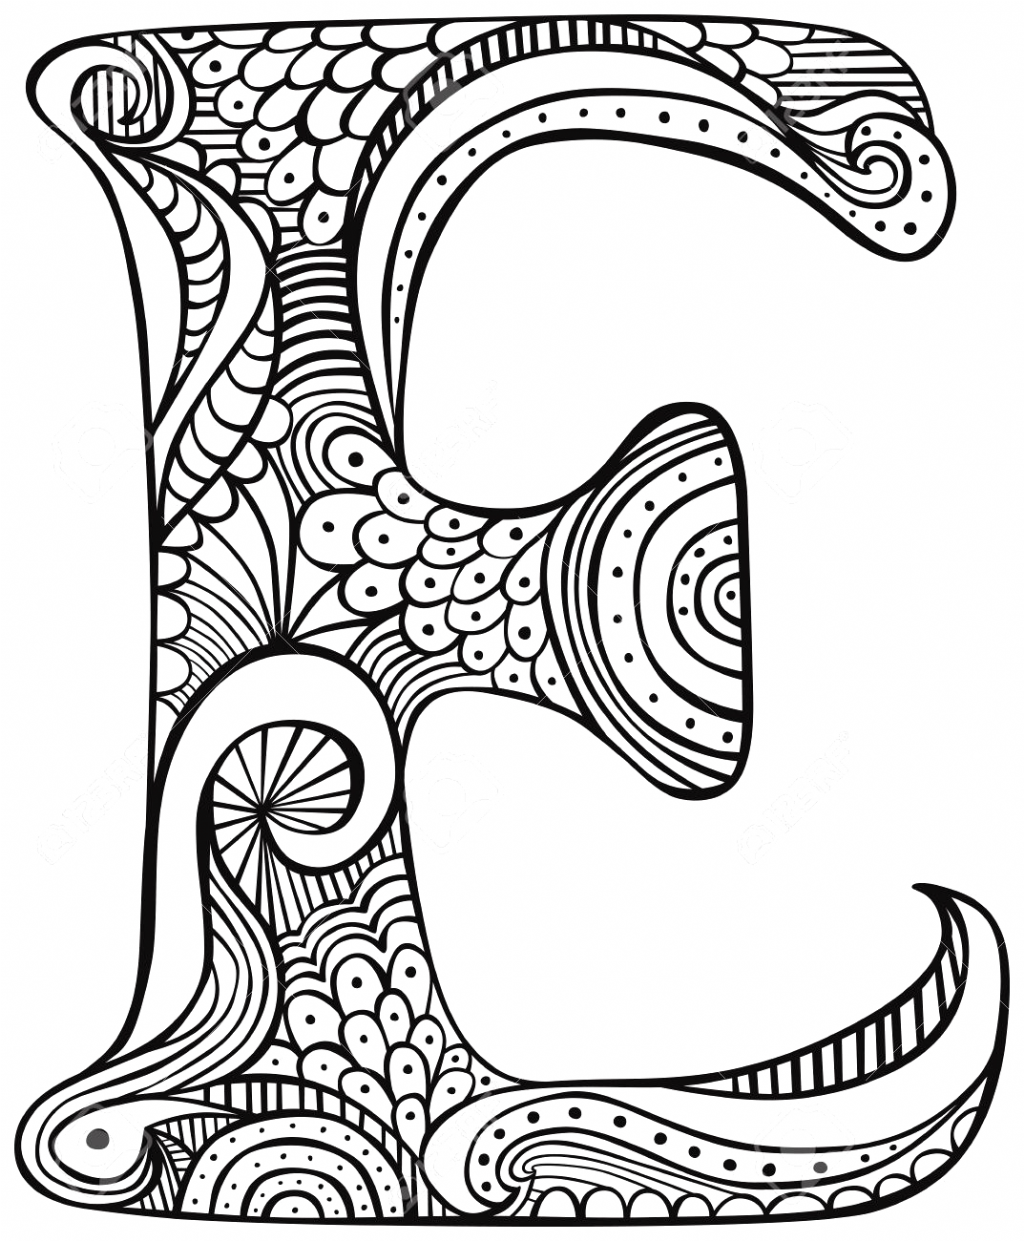 Pin By D Rudy On Drawings Colouring Sheets For Adults Coloring Letters Printable Coloring Pages